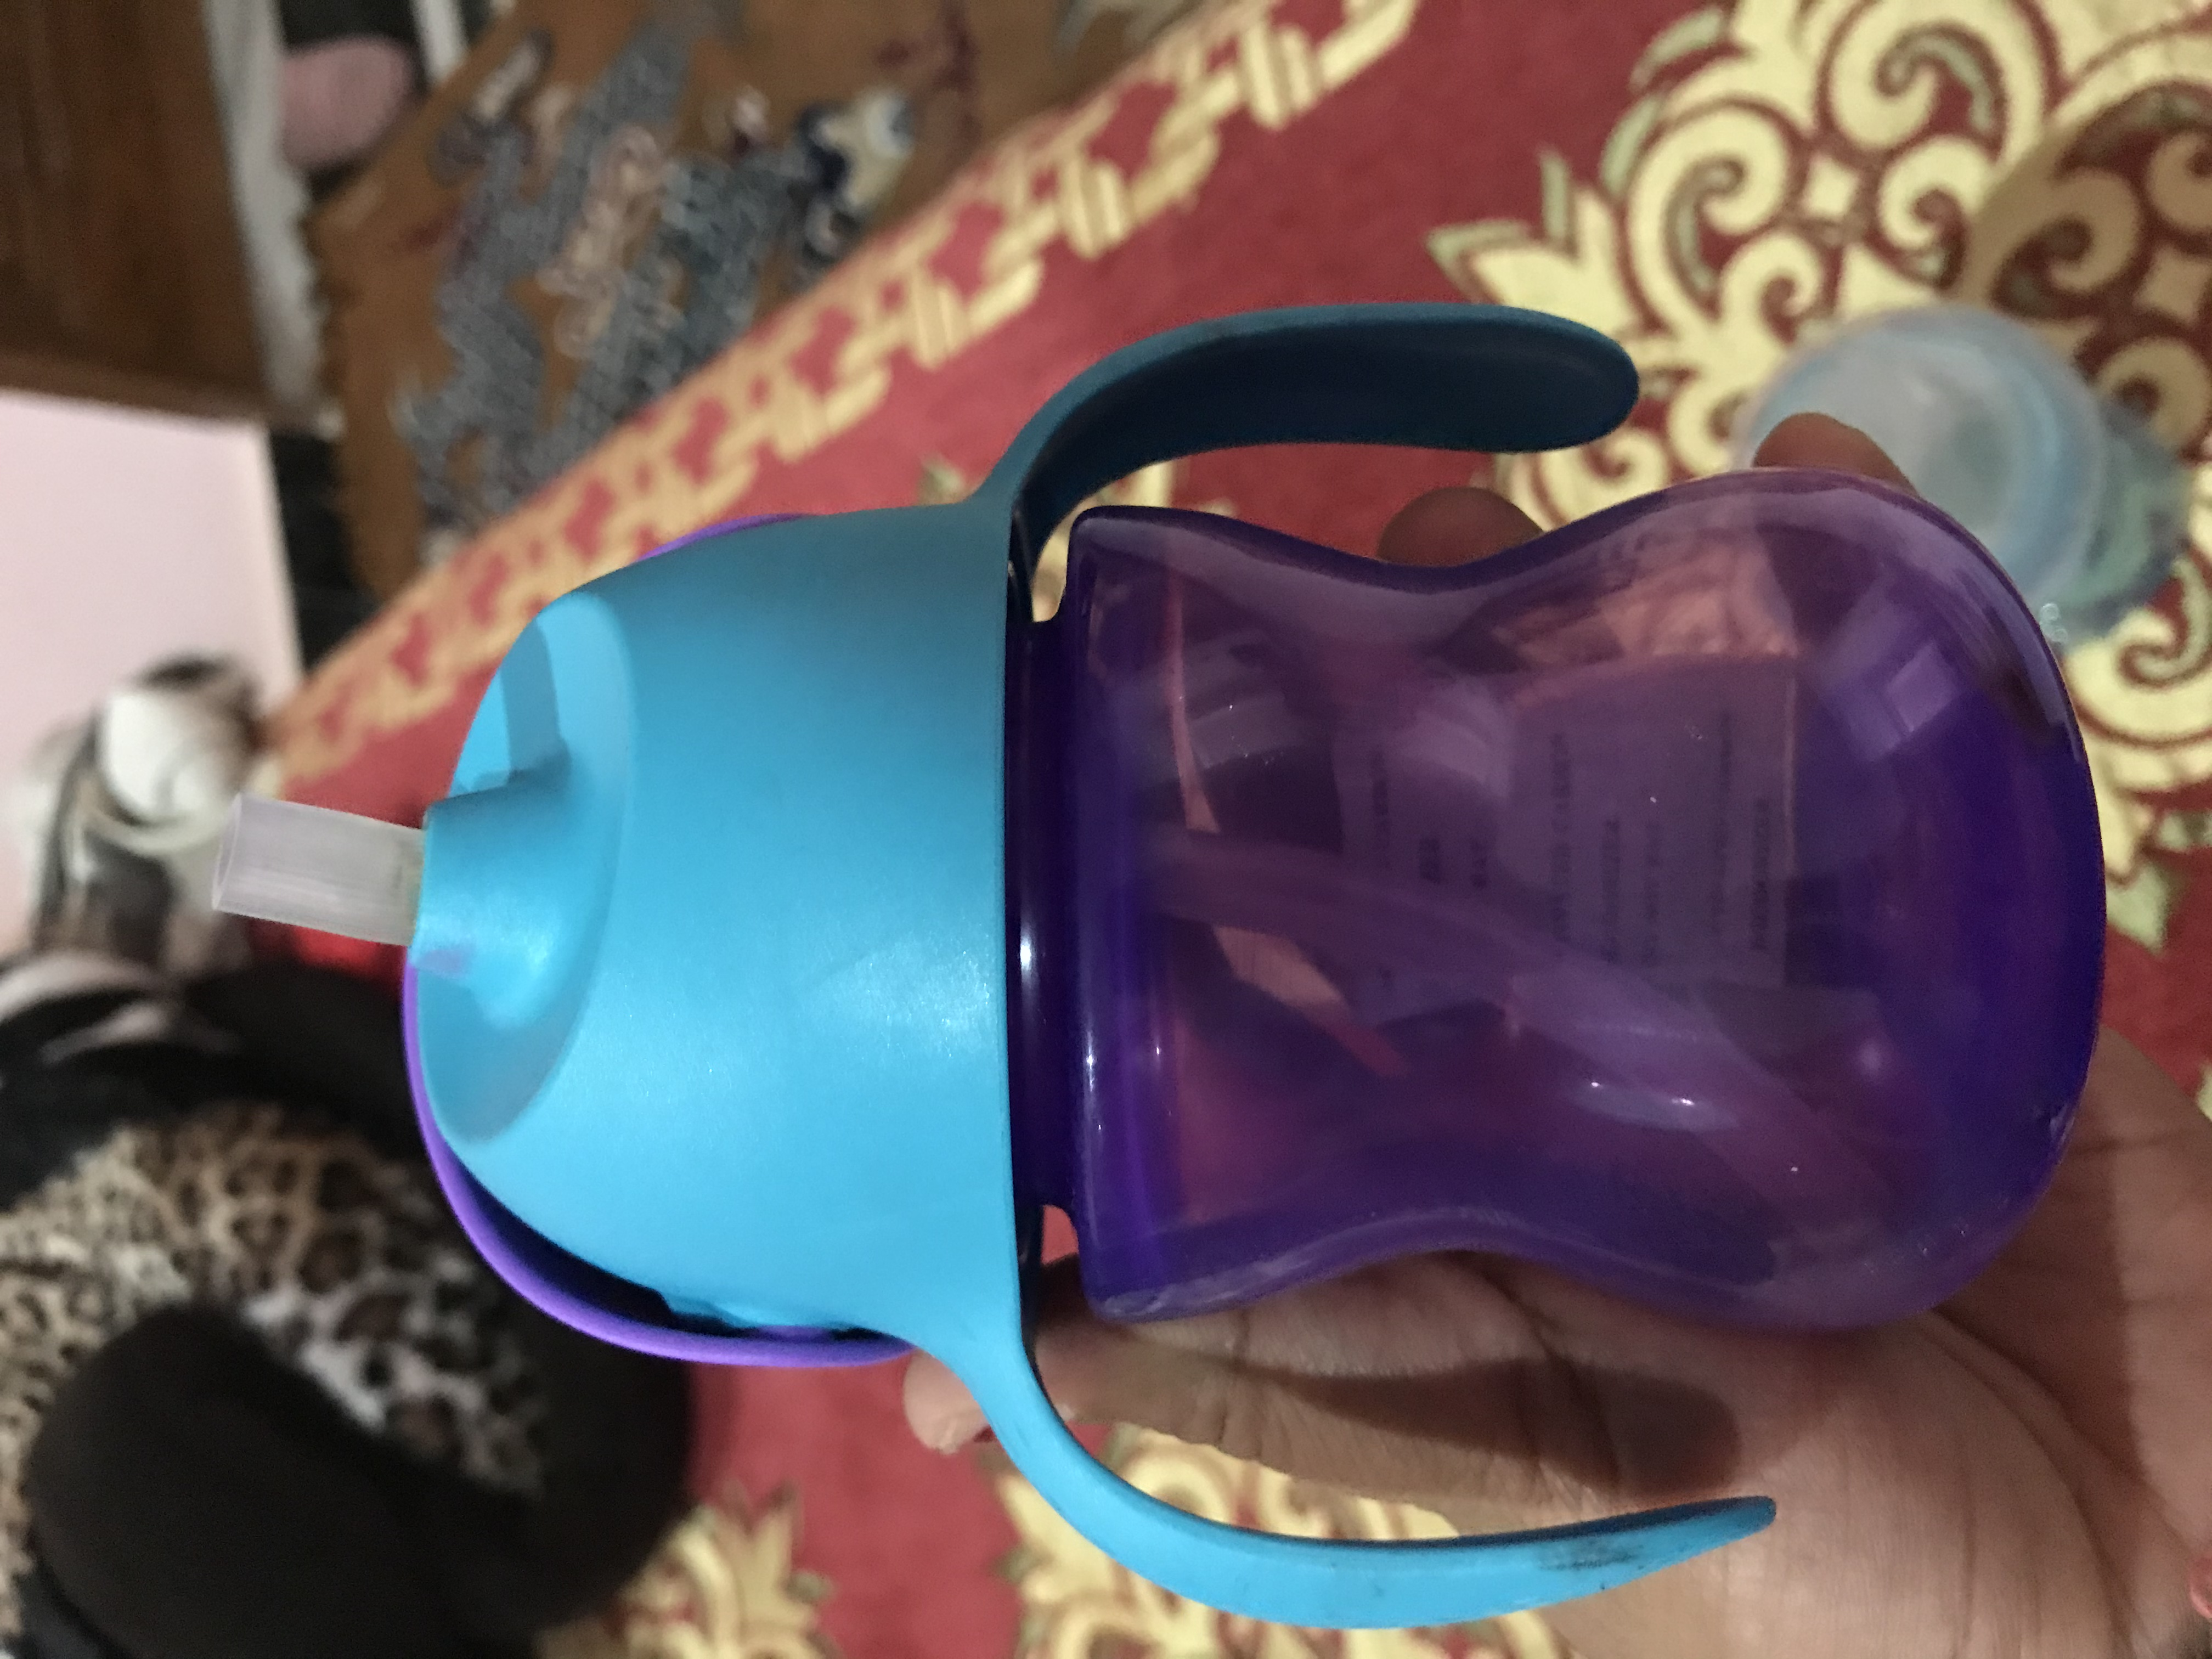 philips avent sipper-Best sipper-By sonisejwal